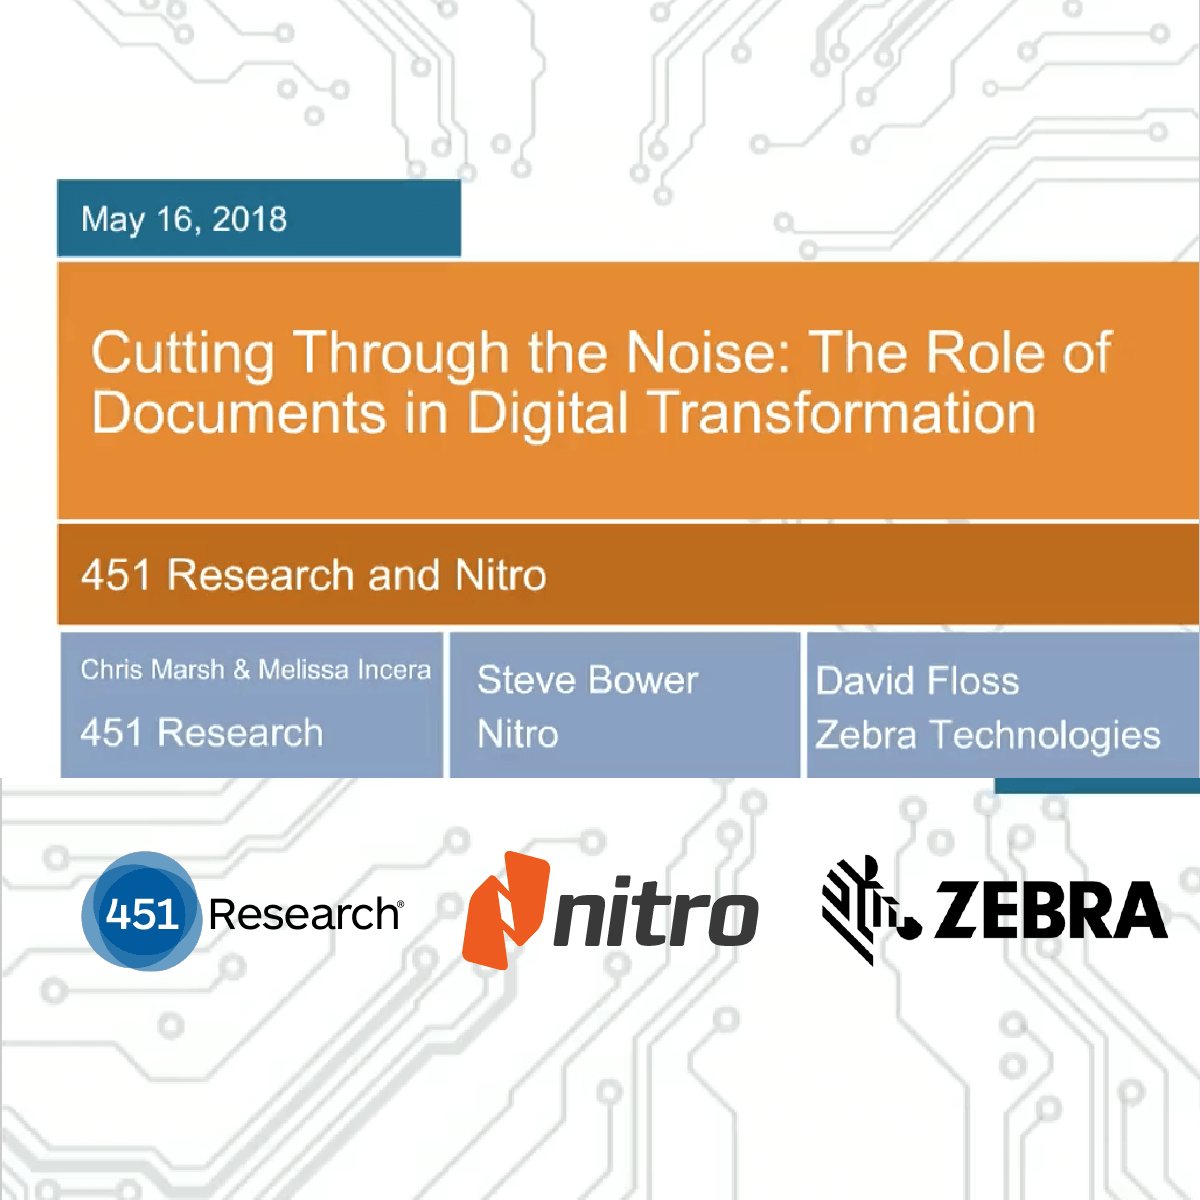 Nitro content library case studies ebooks videos more cutting through the noise the role of documents in digital transformation fandeluxe Image collections